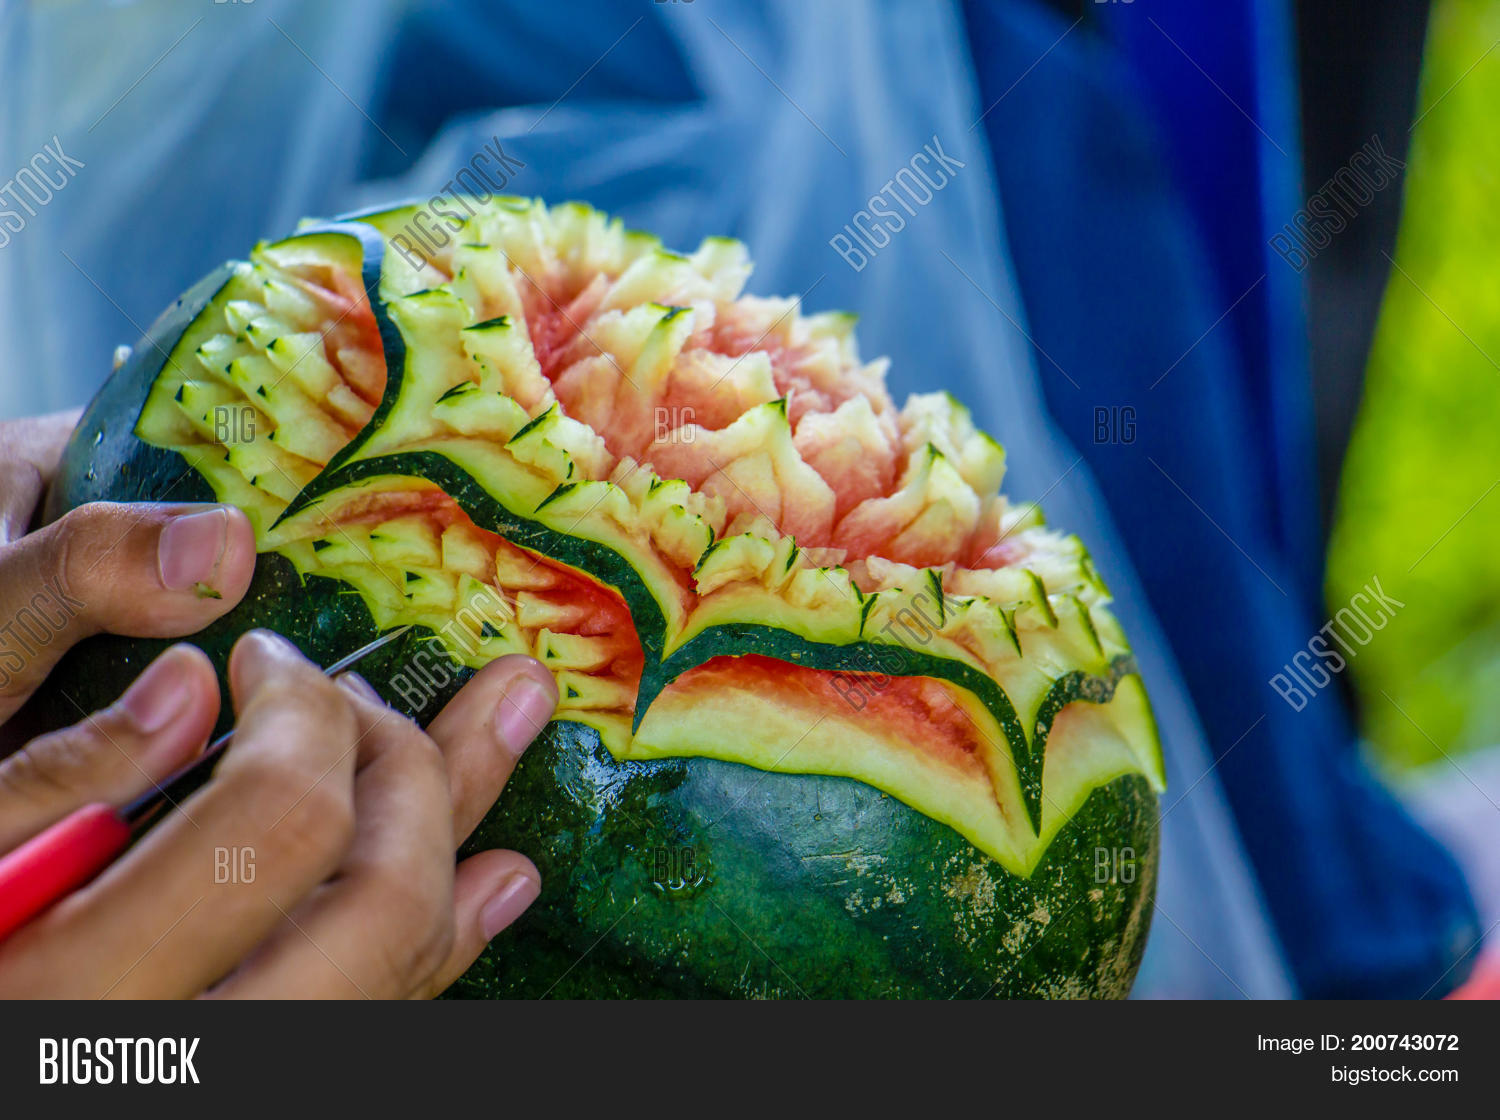 Watermelon carving image photo free trial bigstock